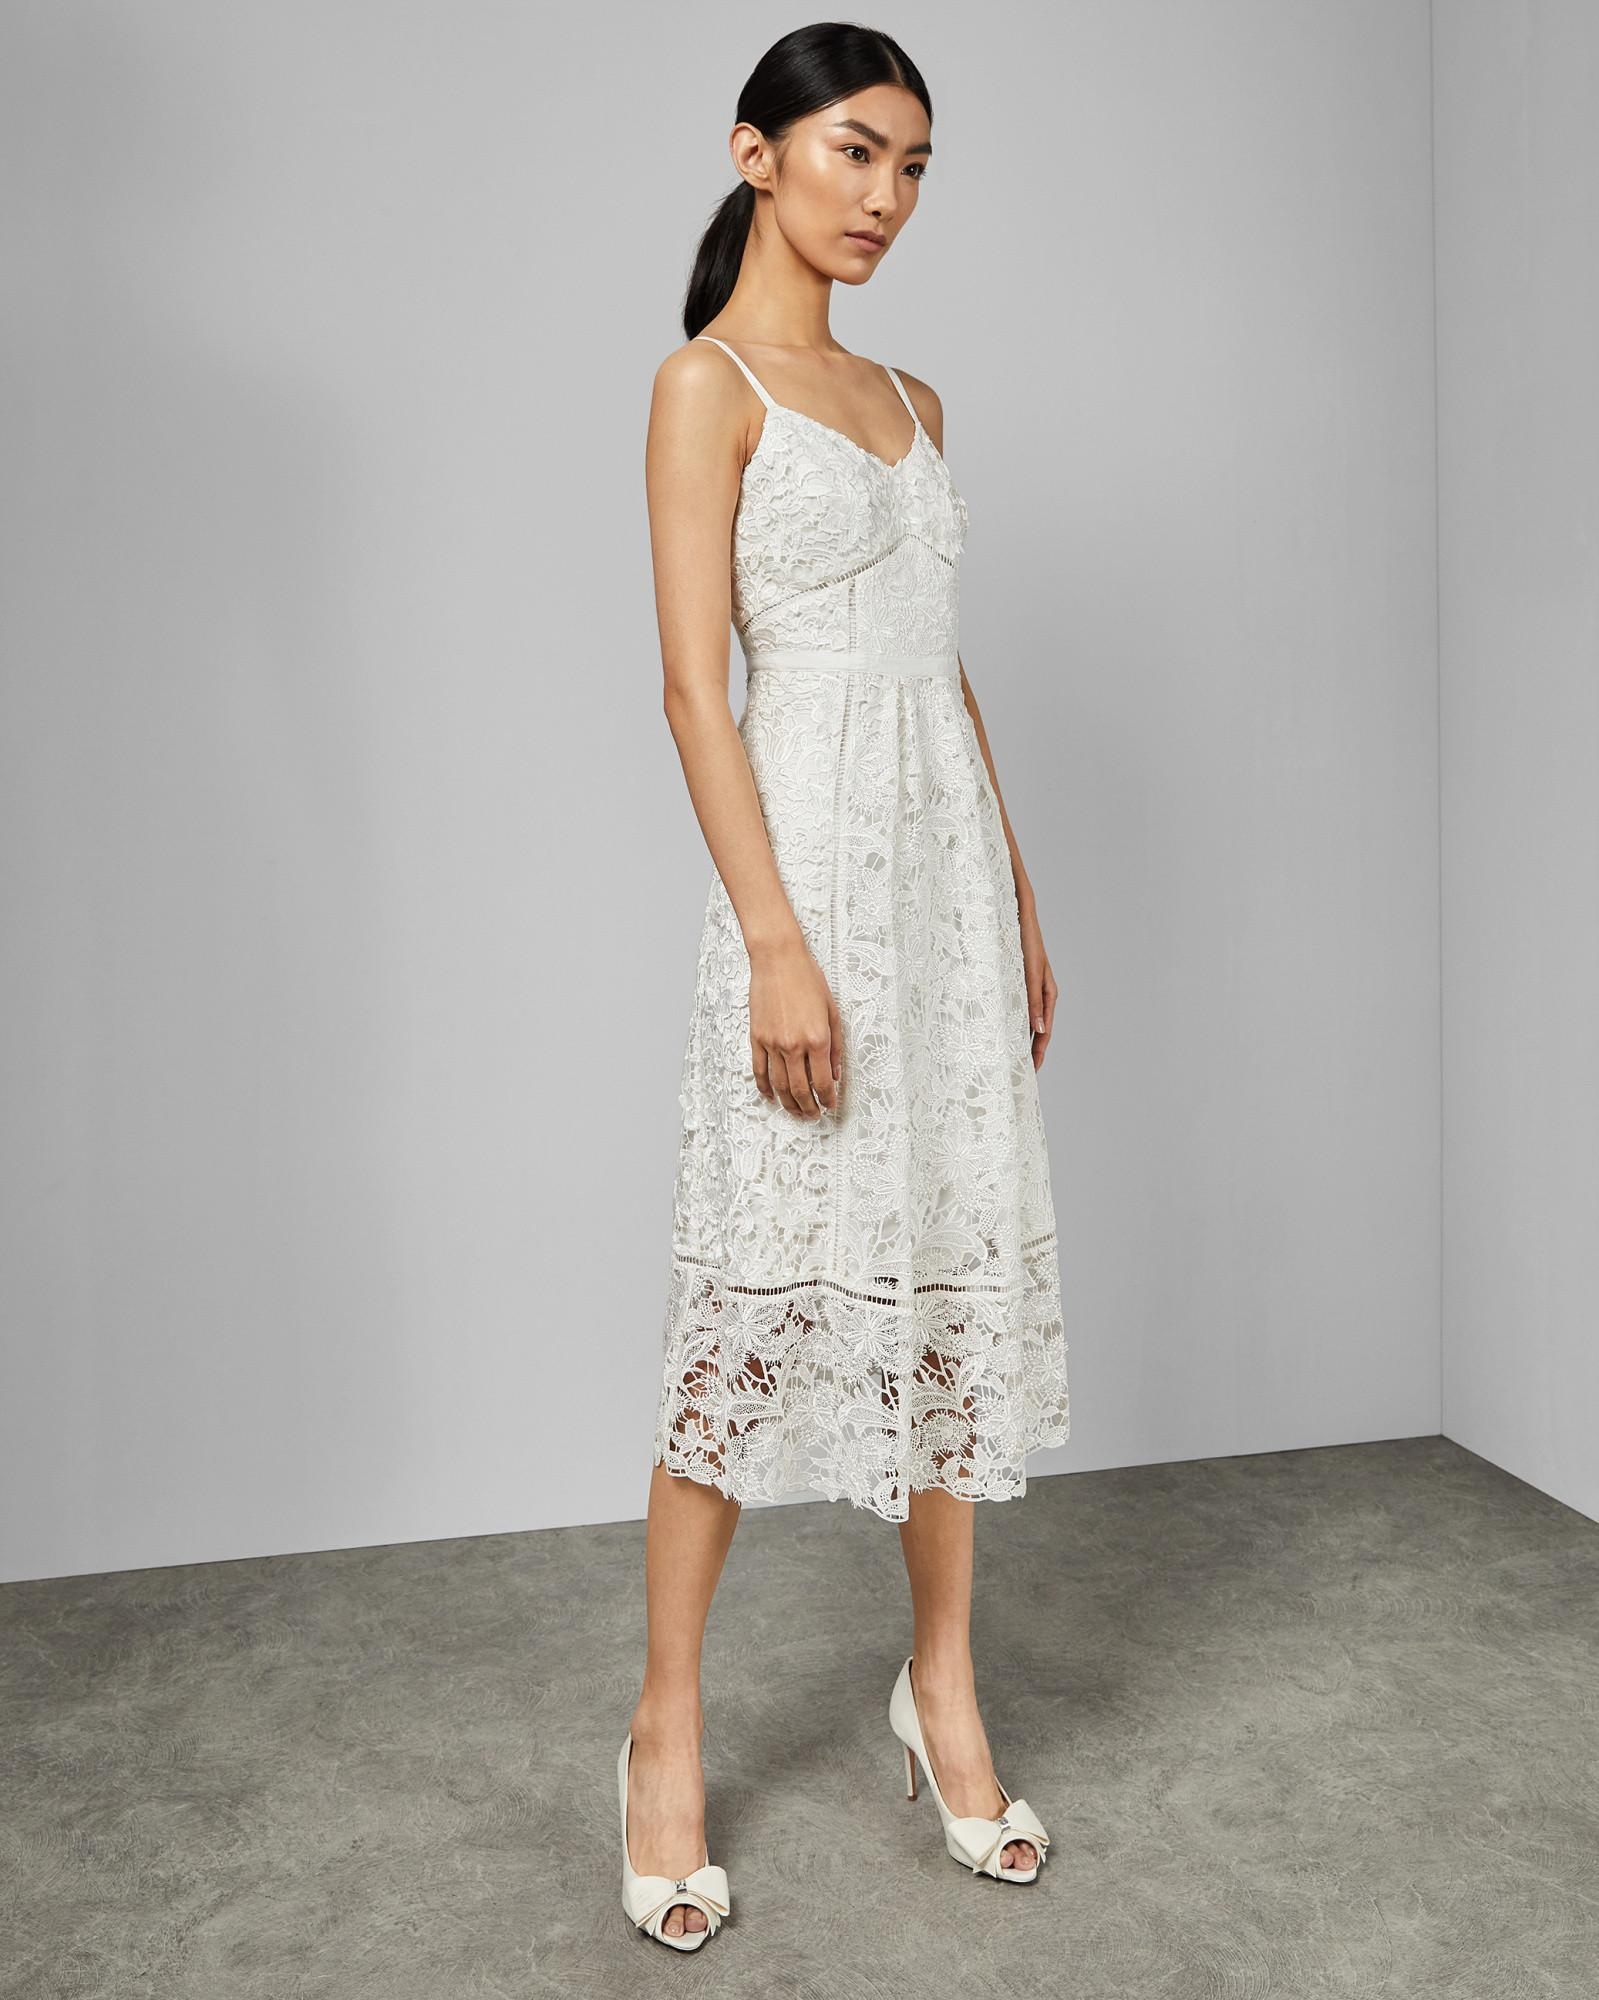 345d29499 Ted Baker - White Mixed Lace Midi Dress - Lyst. View fullscreen